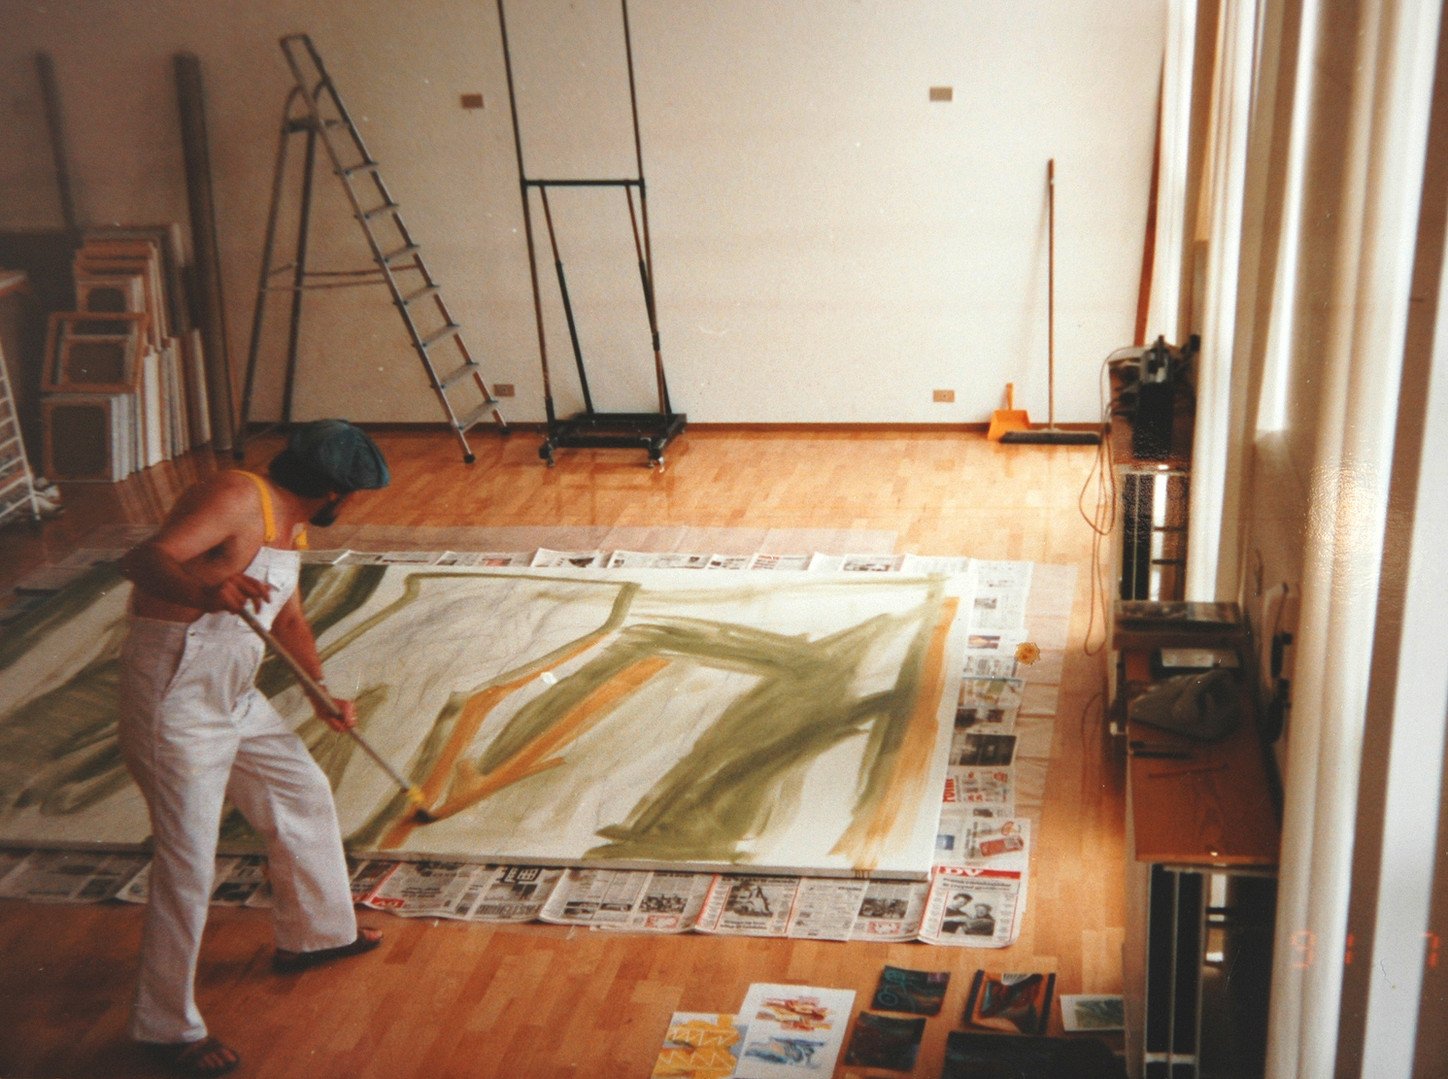 Einar working on a large canvas